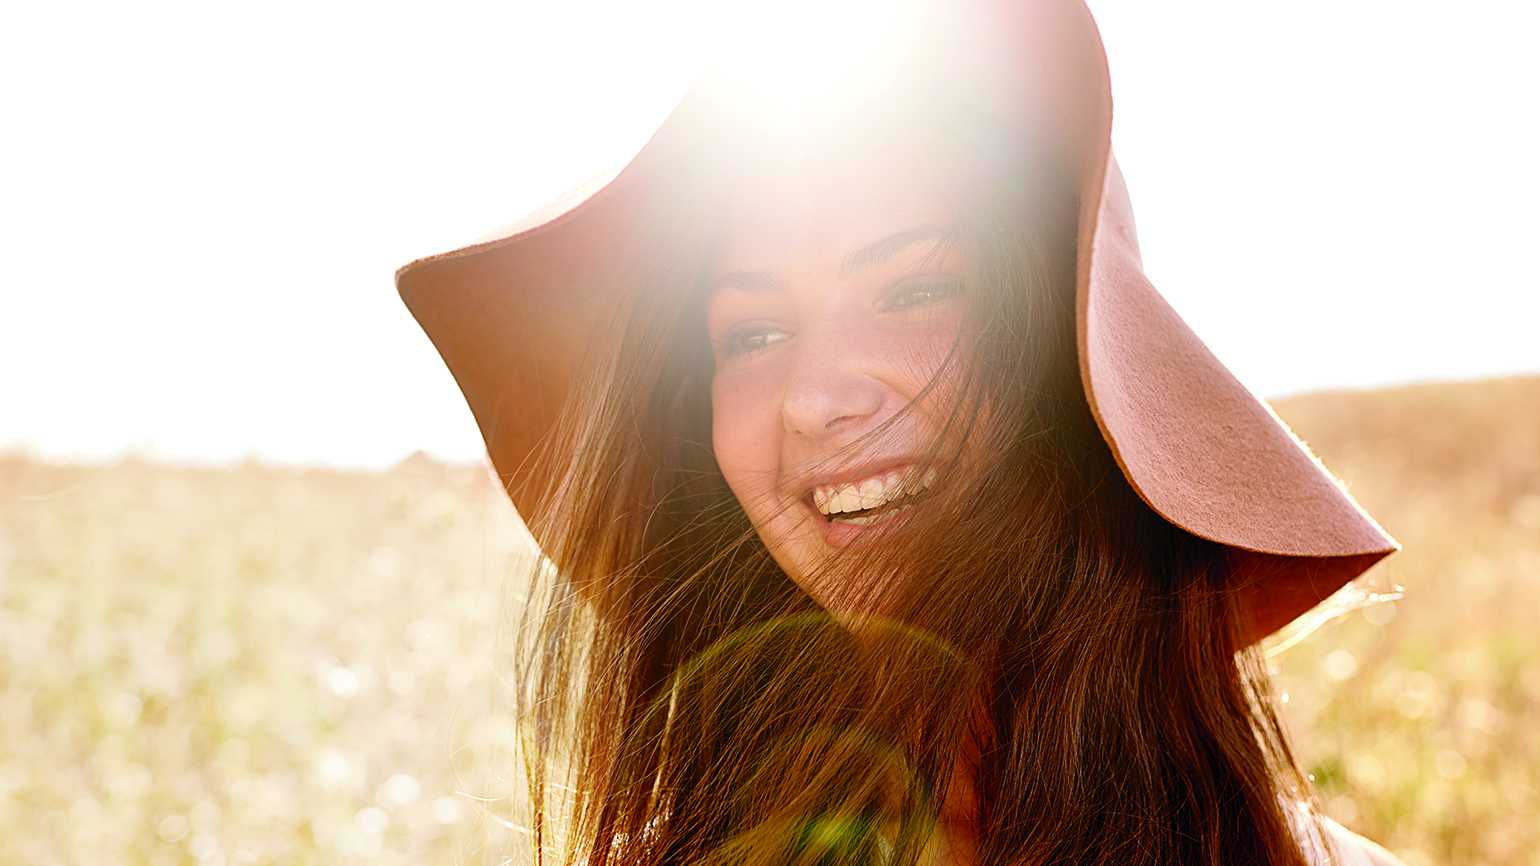 Young, smiling woman outdoors